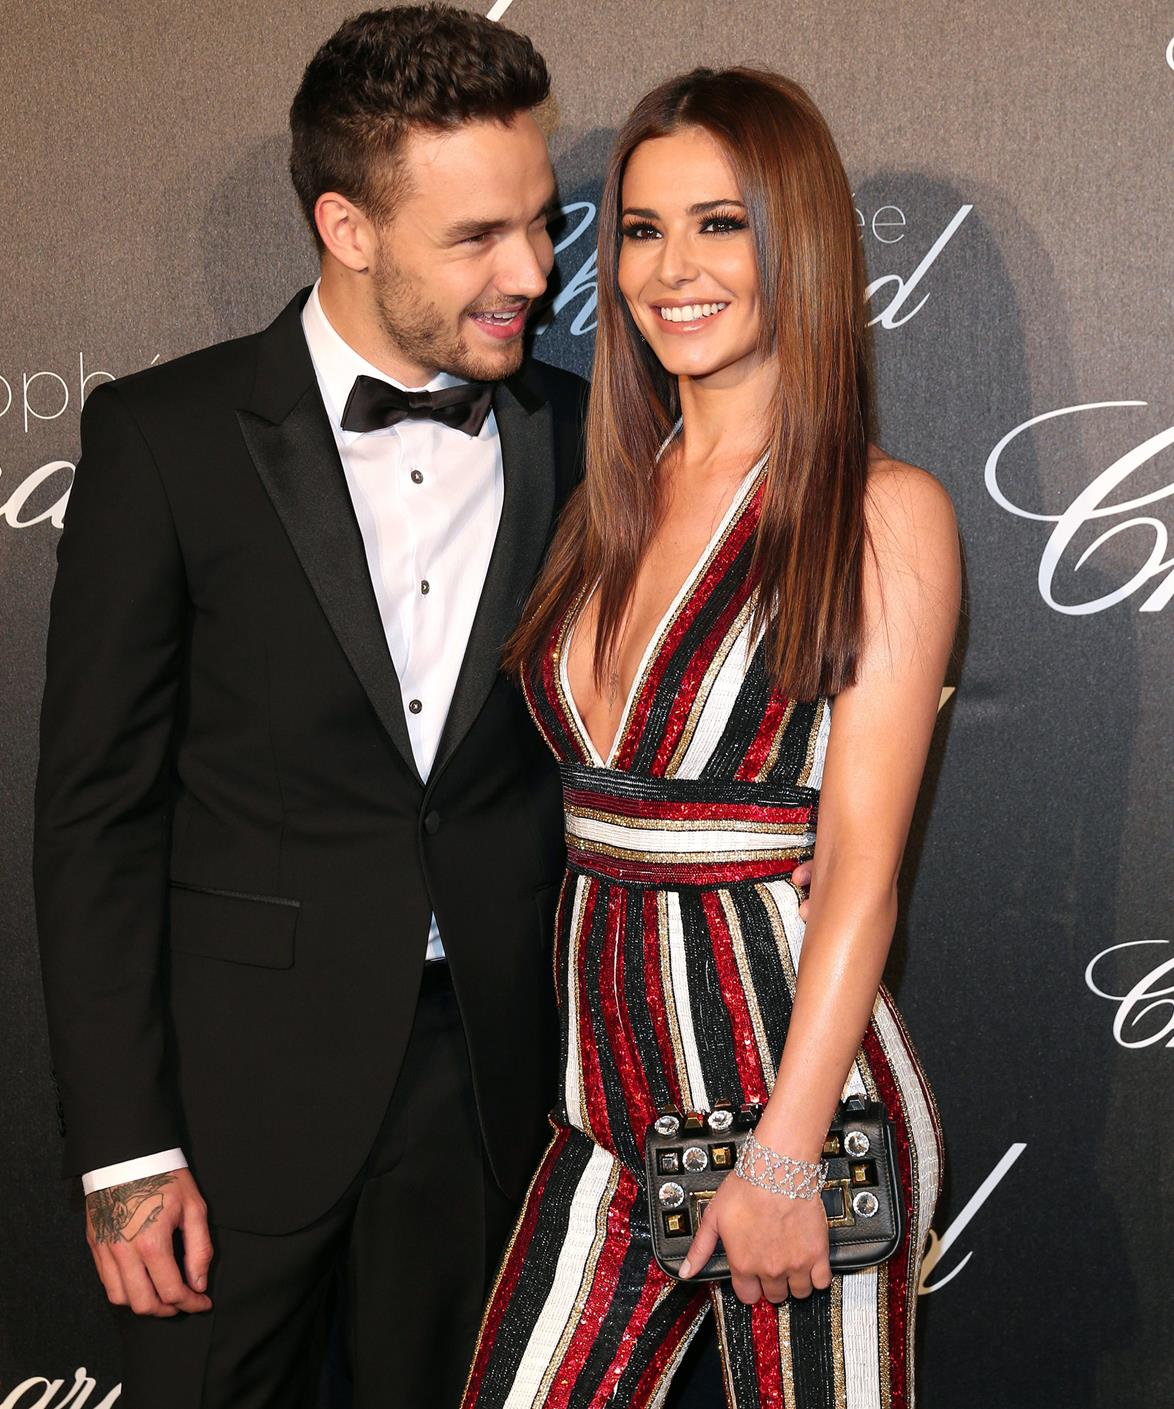 Cheryl finalises divorce after 18 months of marriage